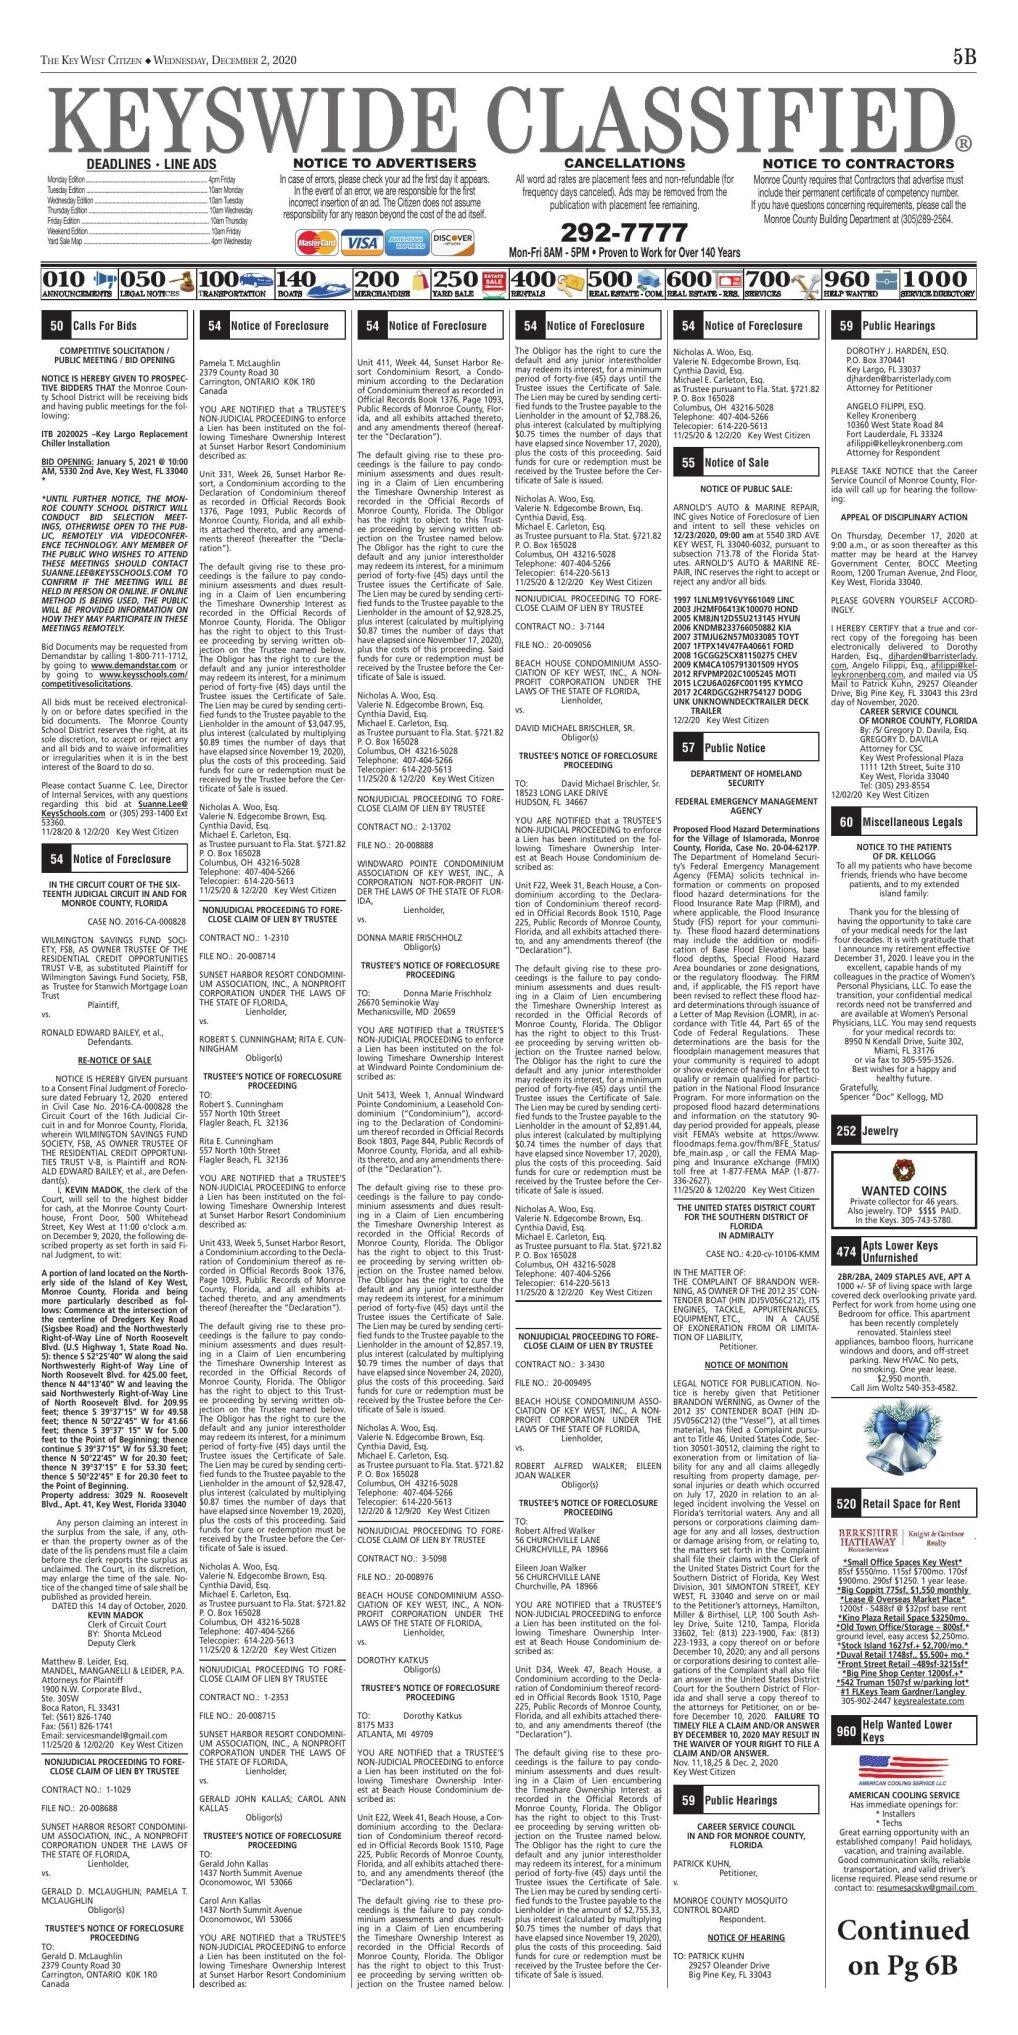 Classifieds/Legal - 2020.20.02